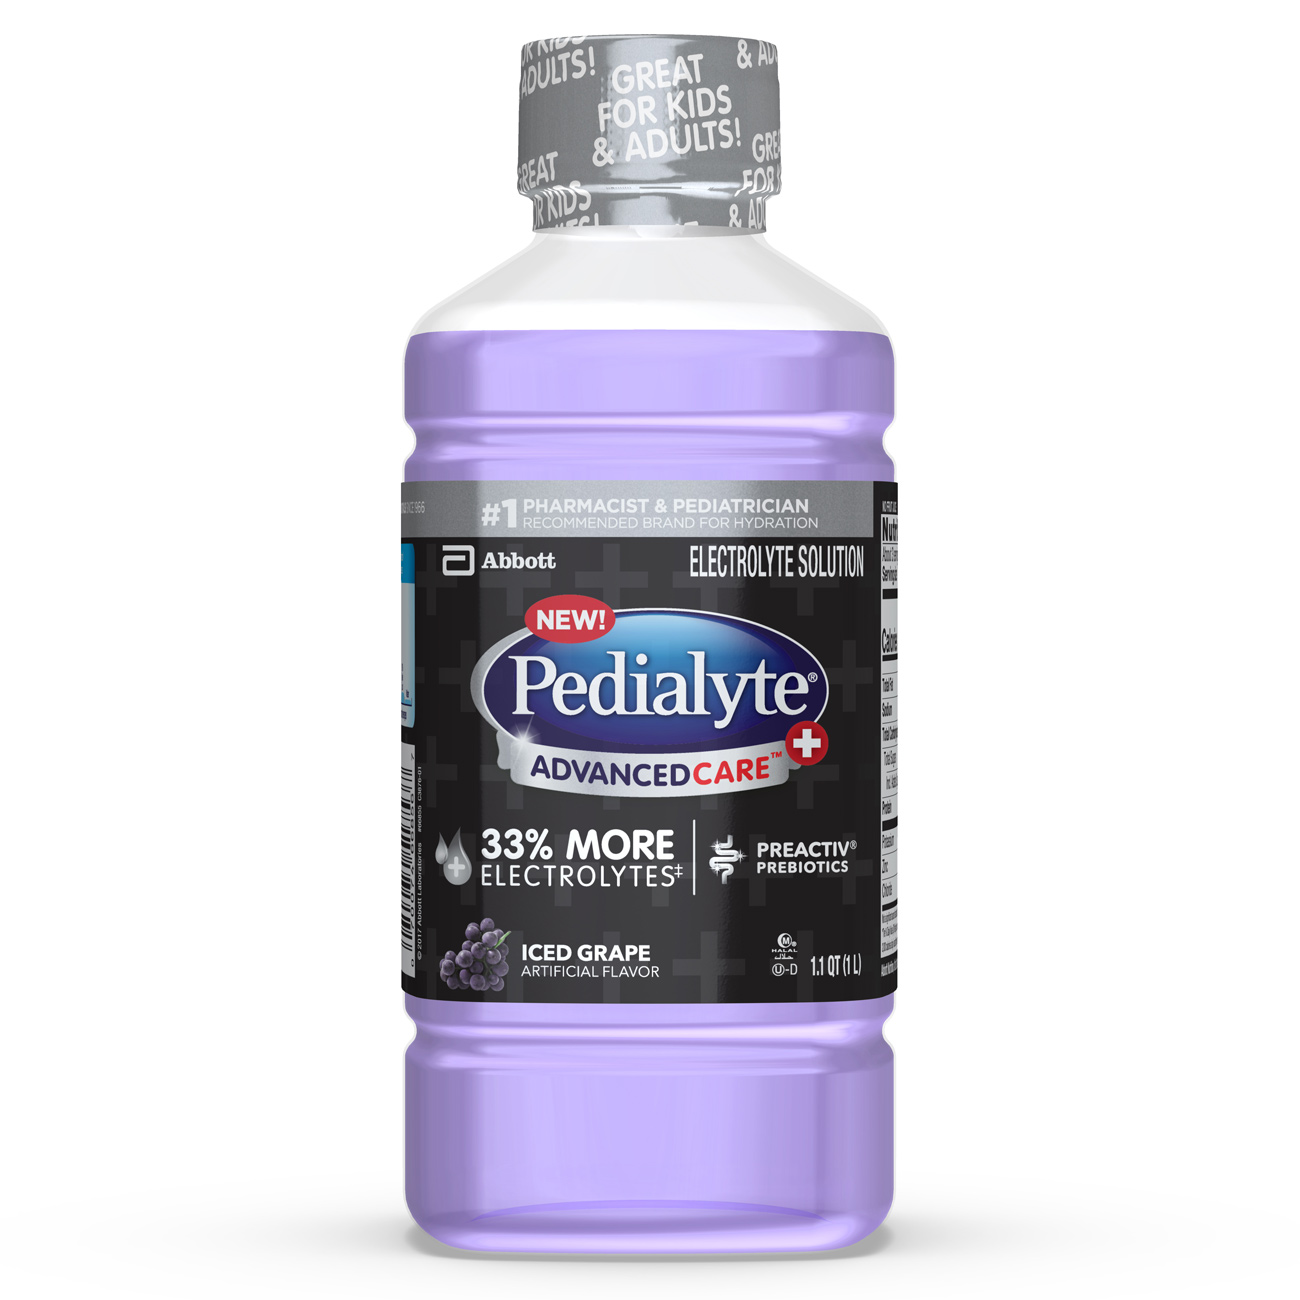 Pedialyte AdvancedCare+ Electrolyte Drink with 33% More Electrolytes and has PreActiv Prebiotics, Iced Grape, 1 Liter (Pack of 4)